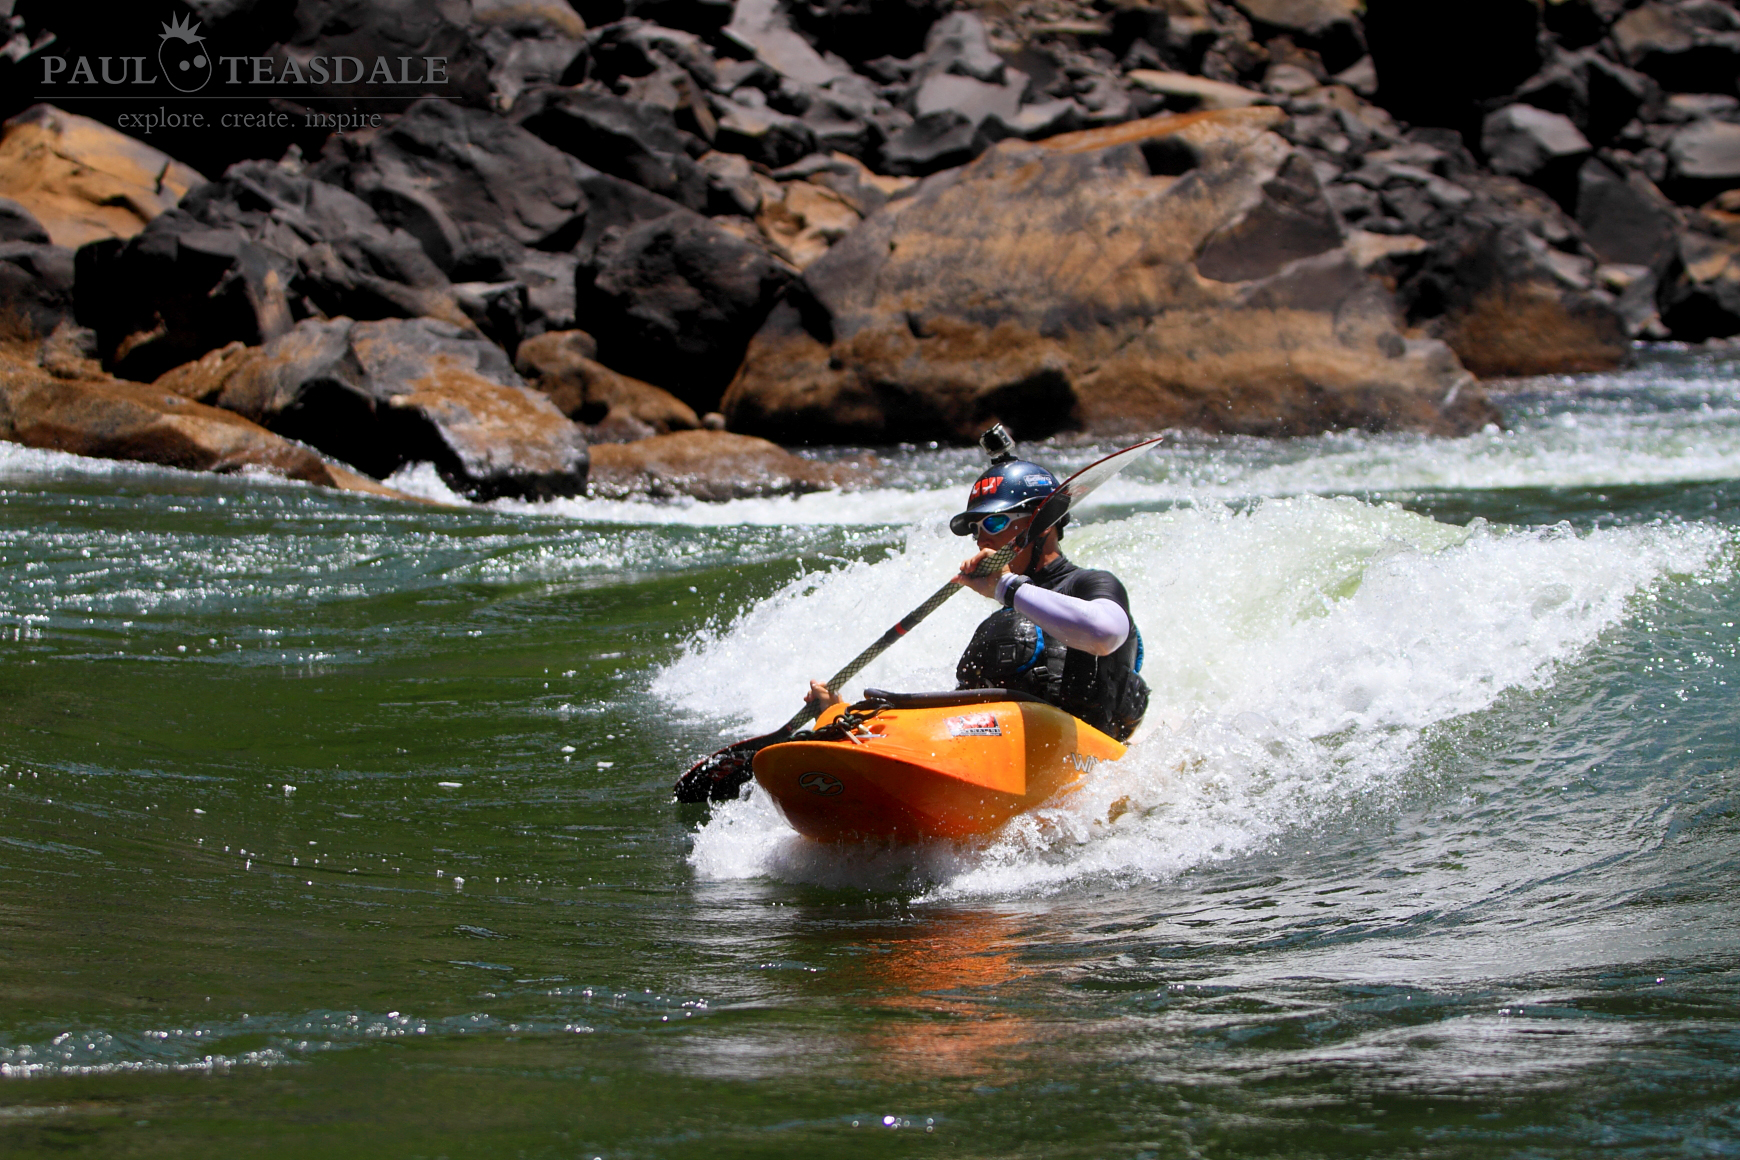 Paul Teasdale surfing a small wave above Rapid 16b on the Zambezi River